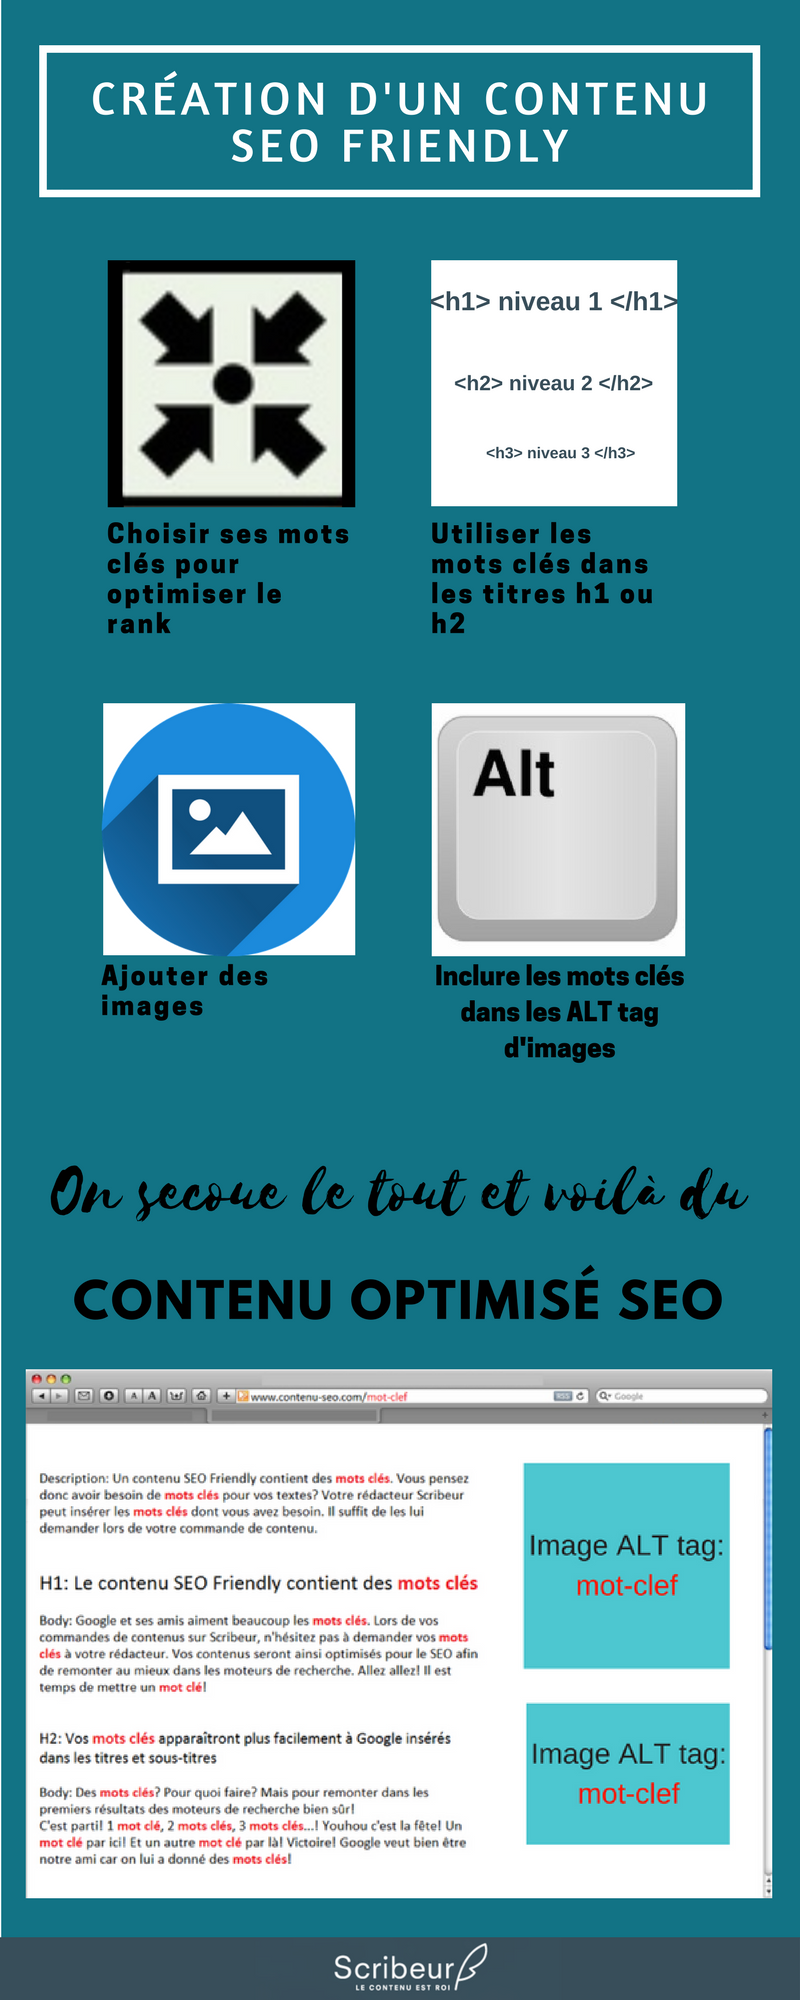 La rédaction de contenus seo friendly